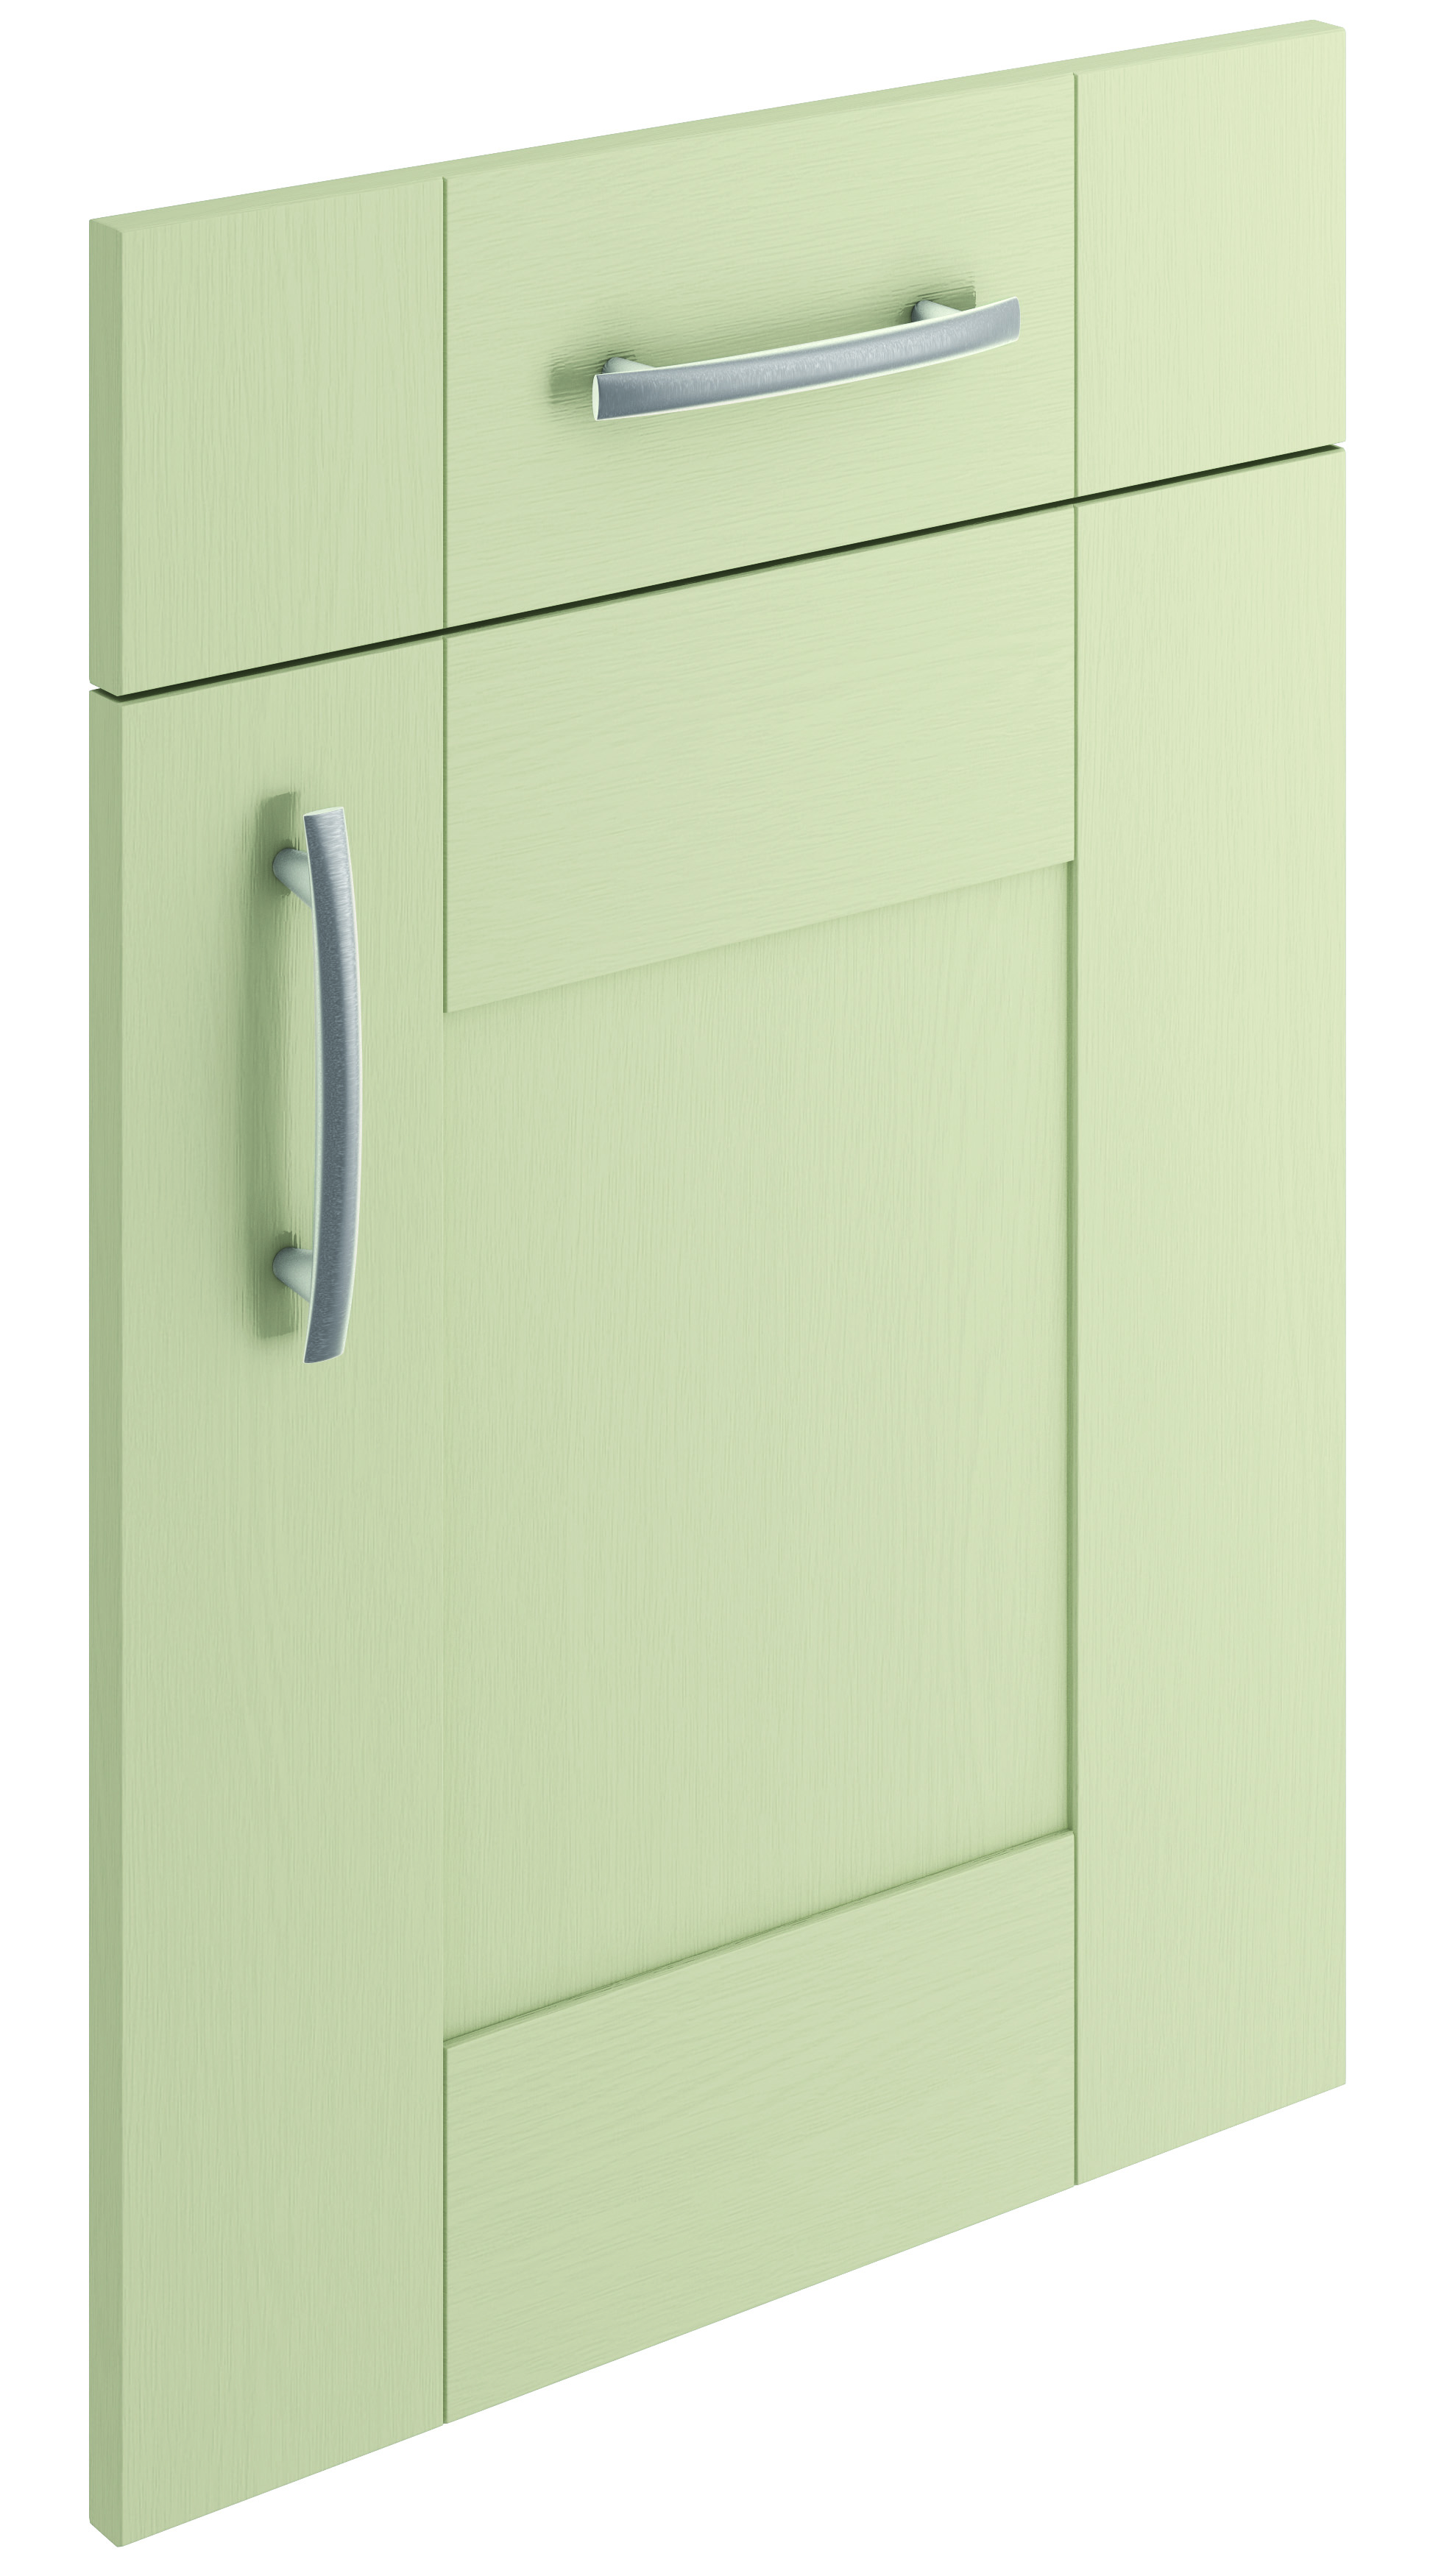 Mirano Cartmel Kitchen Painted Traditional Classic Timber Oak Matte Sage Green Tongue Groove Shaker Door